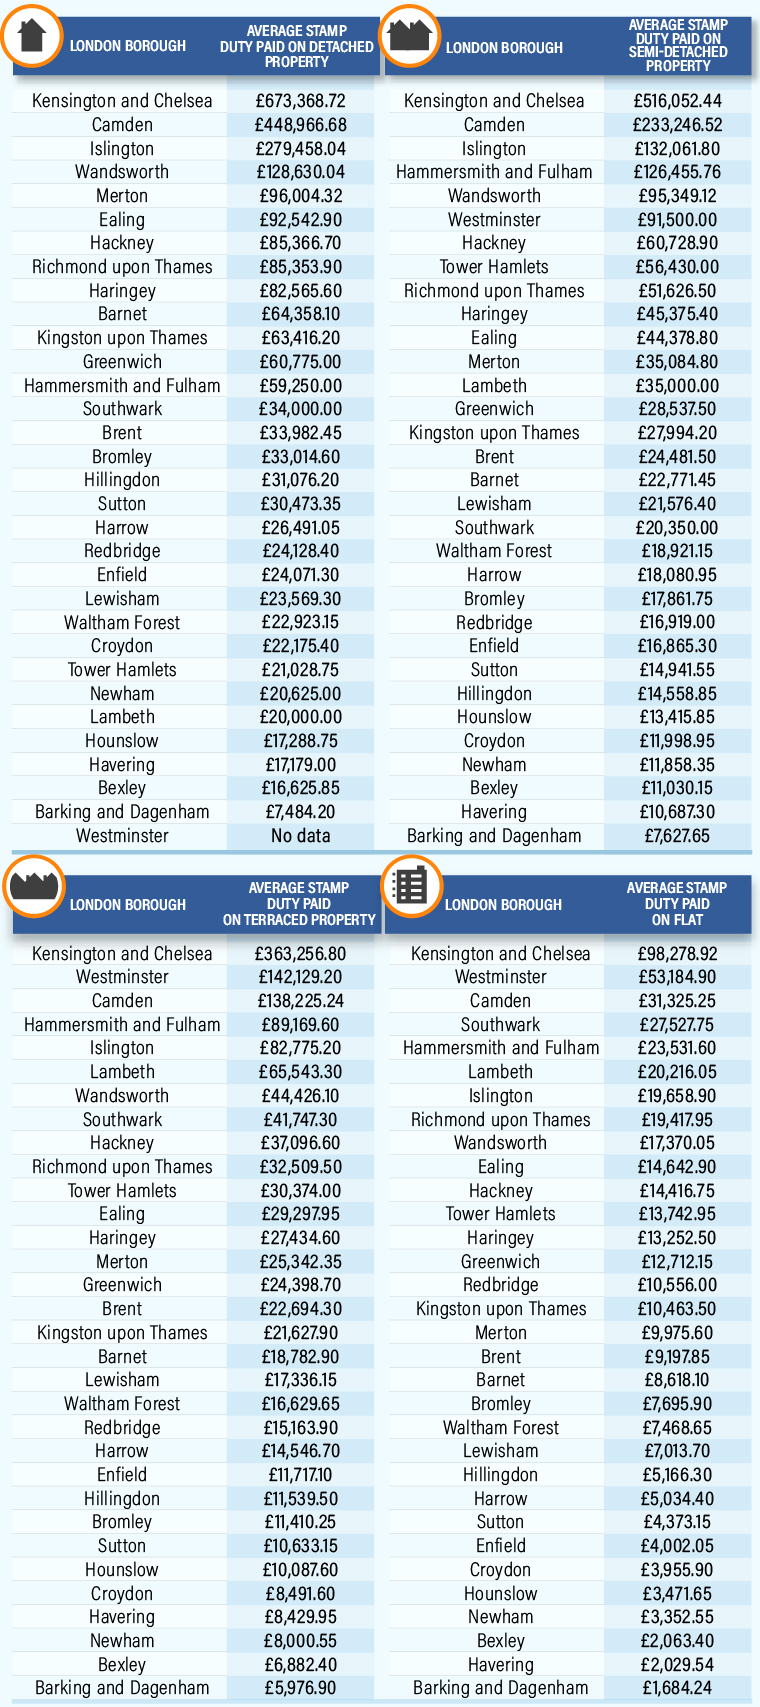 london-stamp-duty-land-tax-infographic